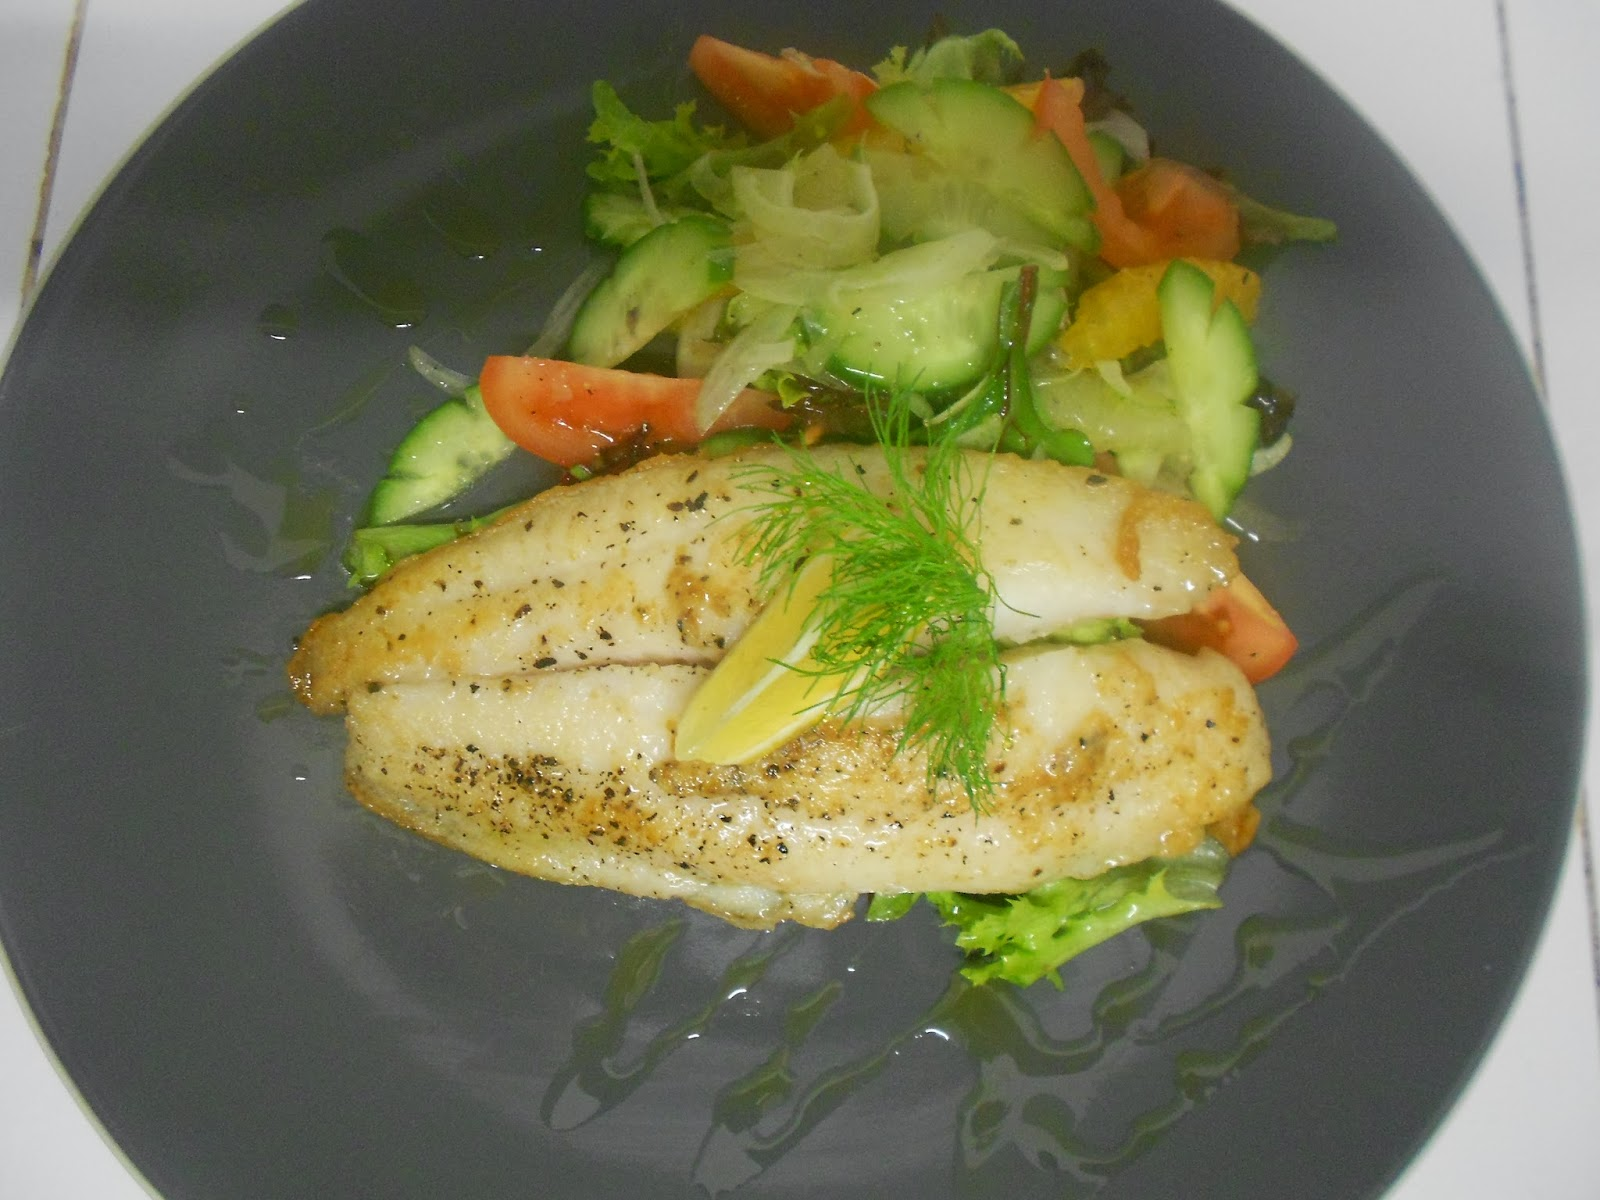 Mauritian modern delish and recipe fish fennel salad for Fish and salad